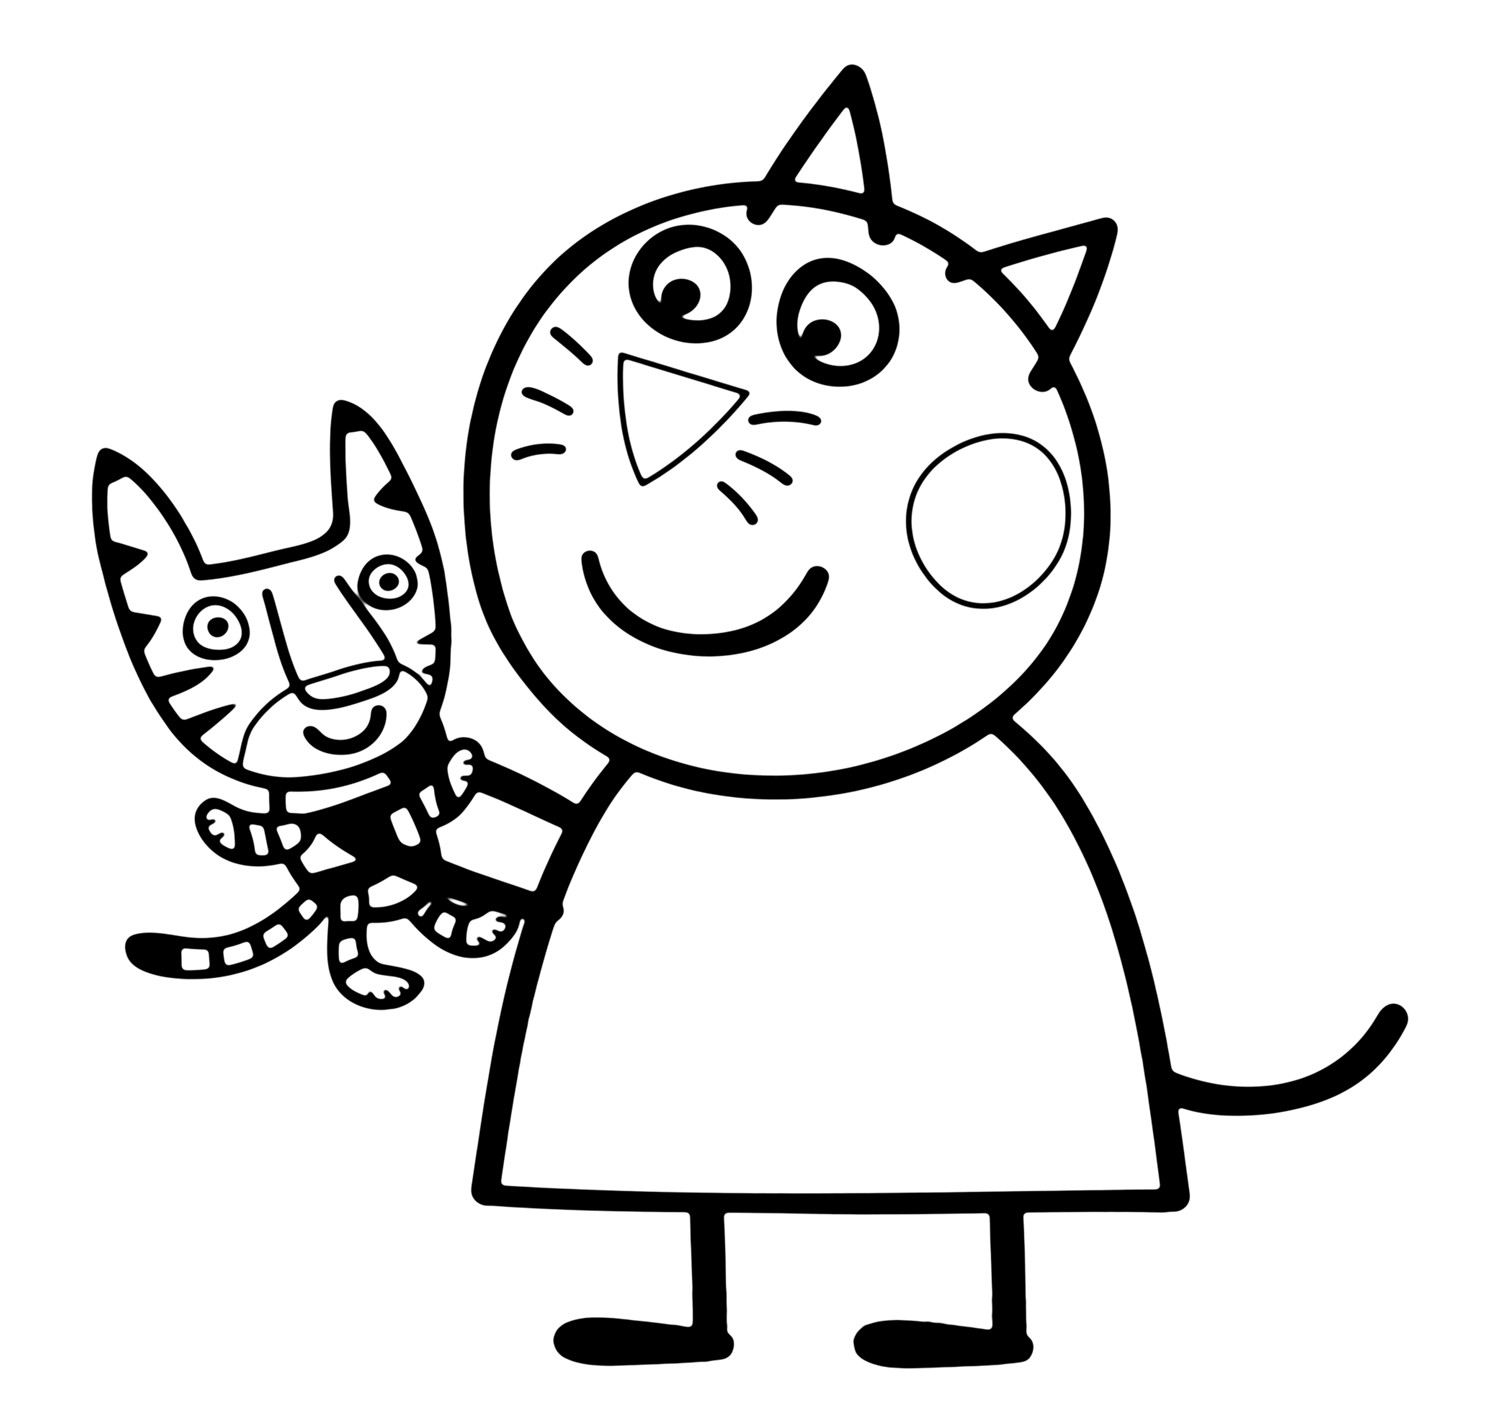 peppa pig colouring pages online the best free peppa coloring page images download from pig colouring pages online peppa